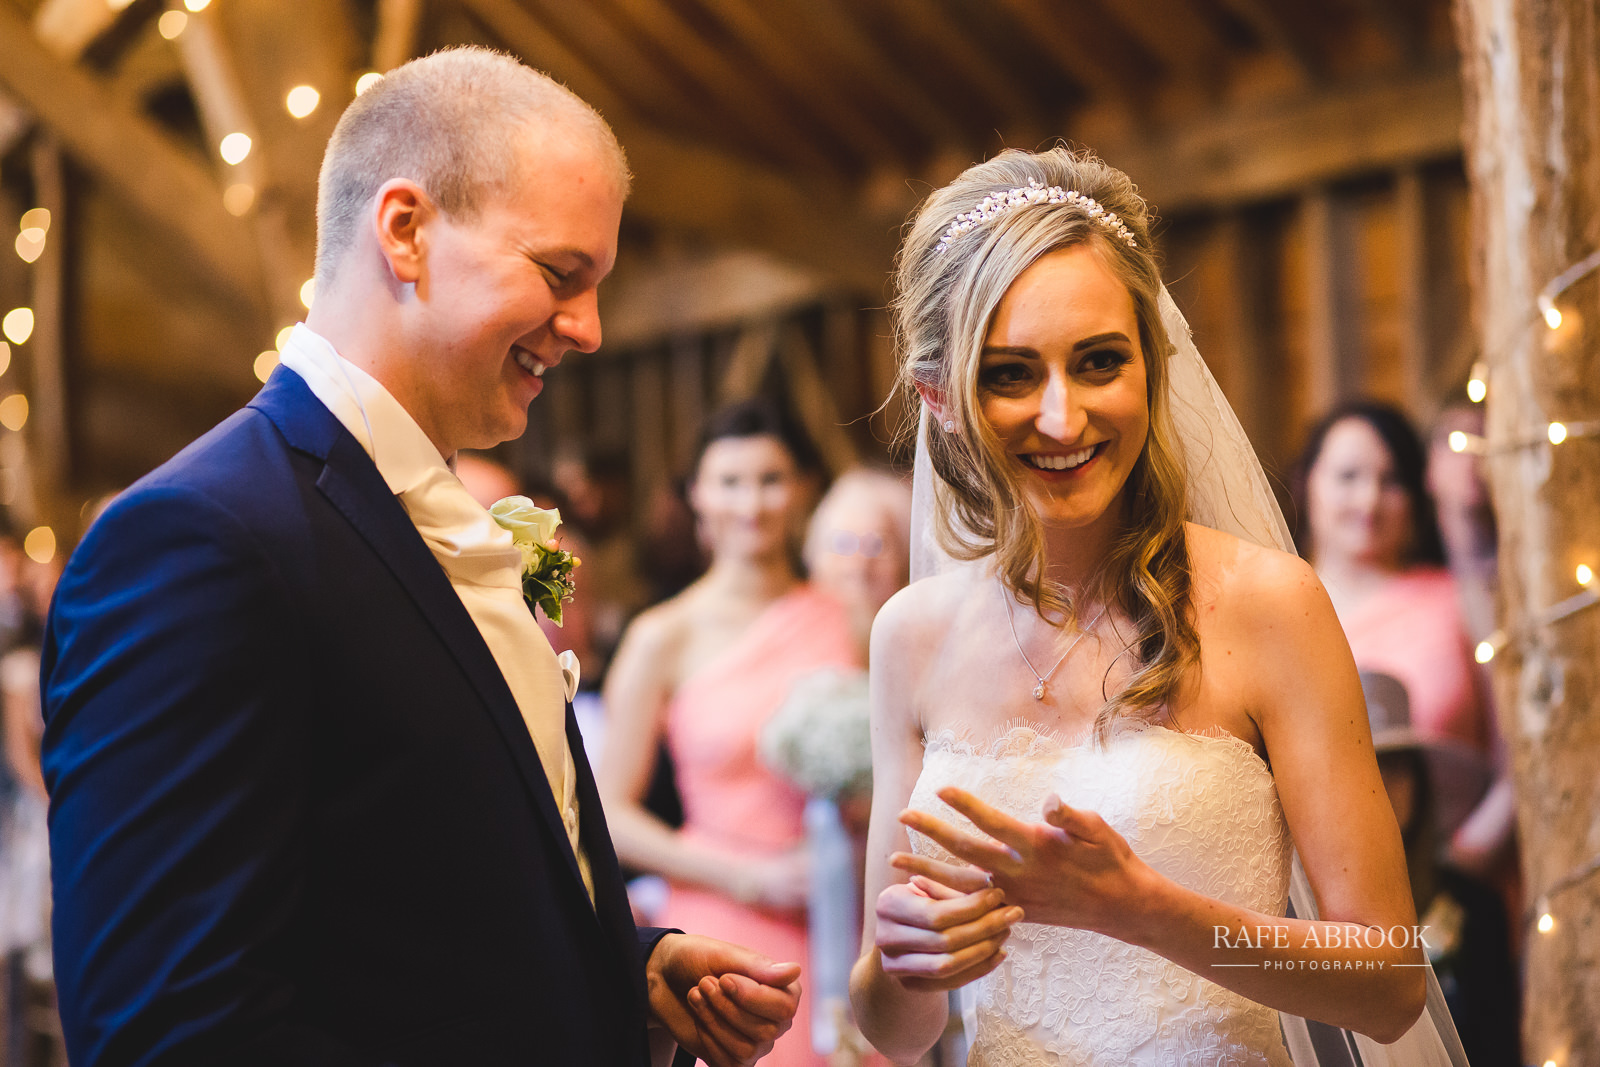 bassmead manor barns wedding st neots cambridgeshire hertfordshire wedding photographer rafe abrook-1375.jpg